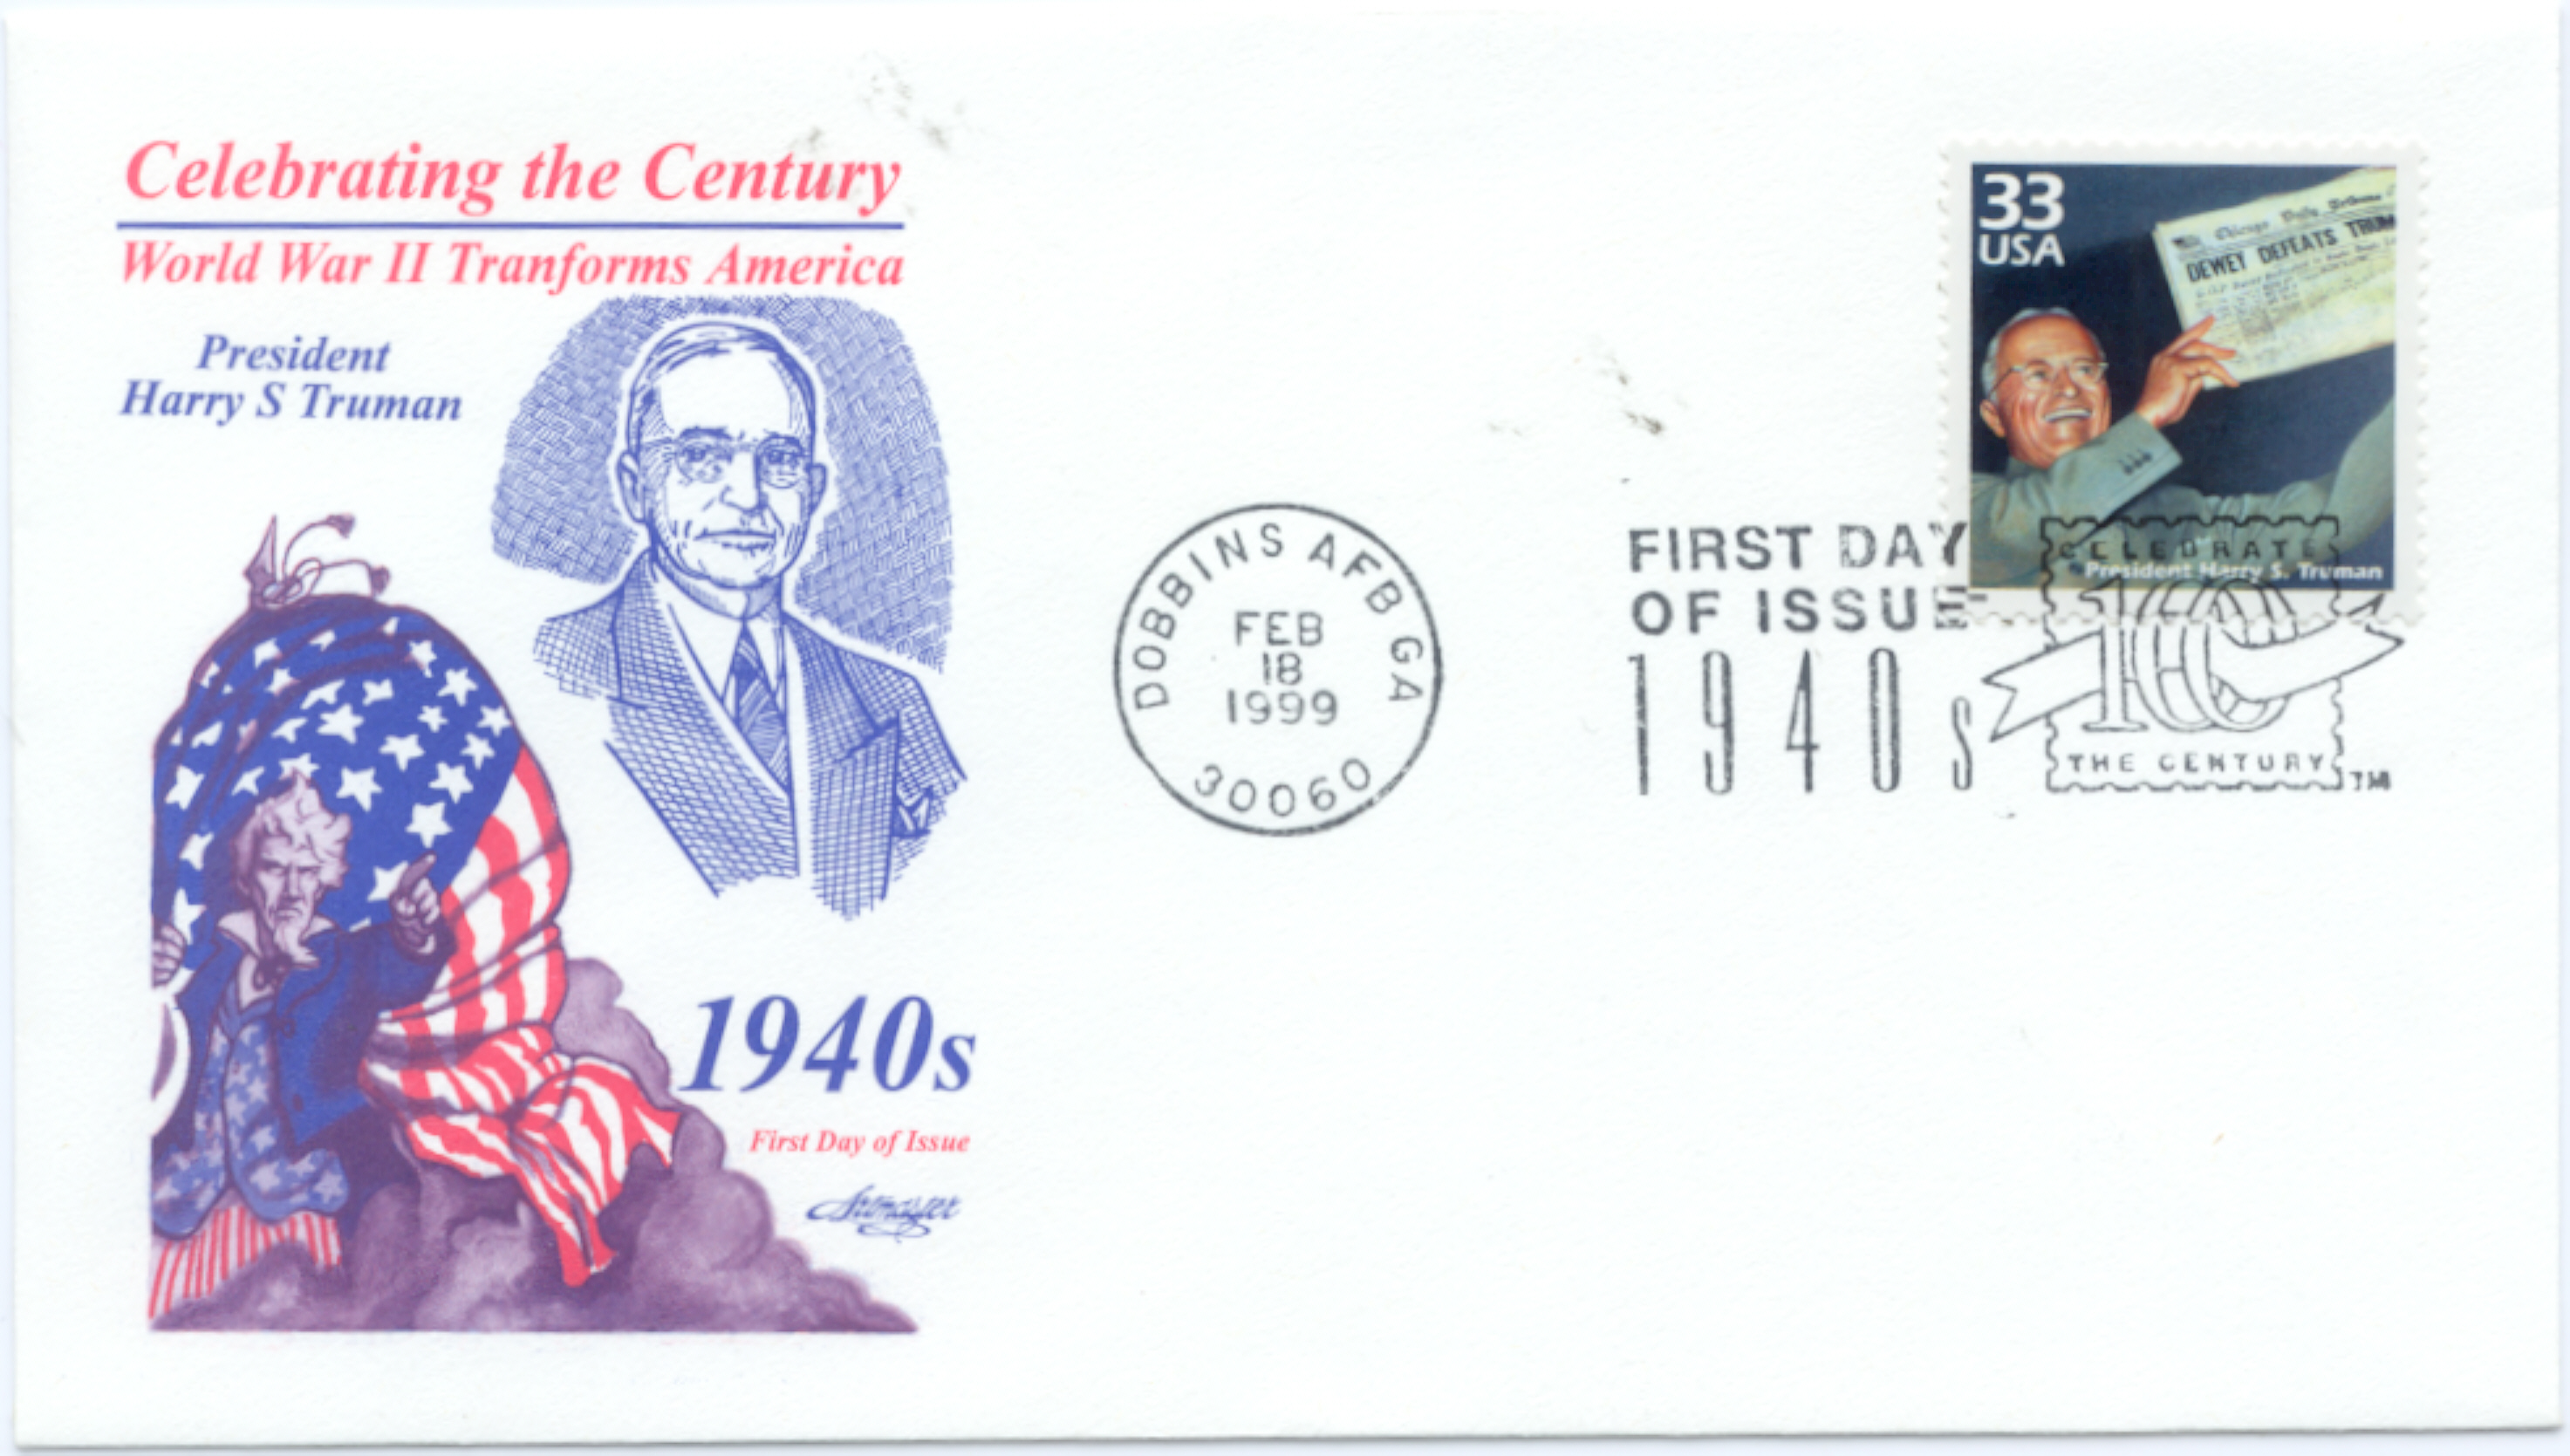 HST Celebrate the Century FDC #3